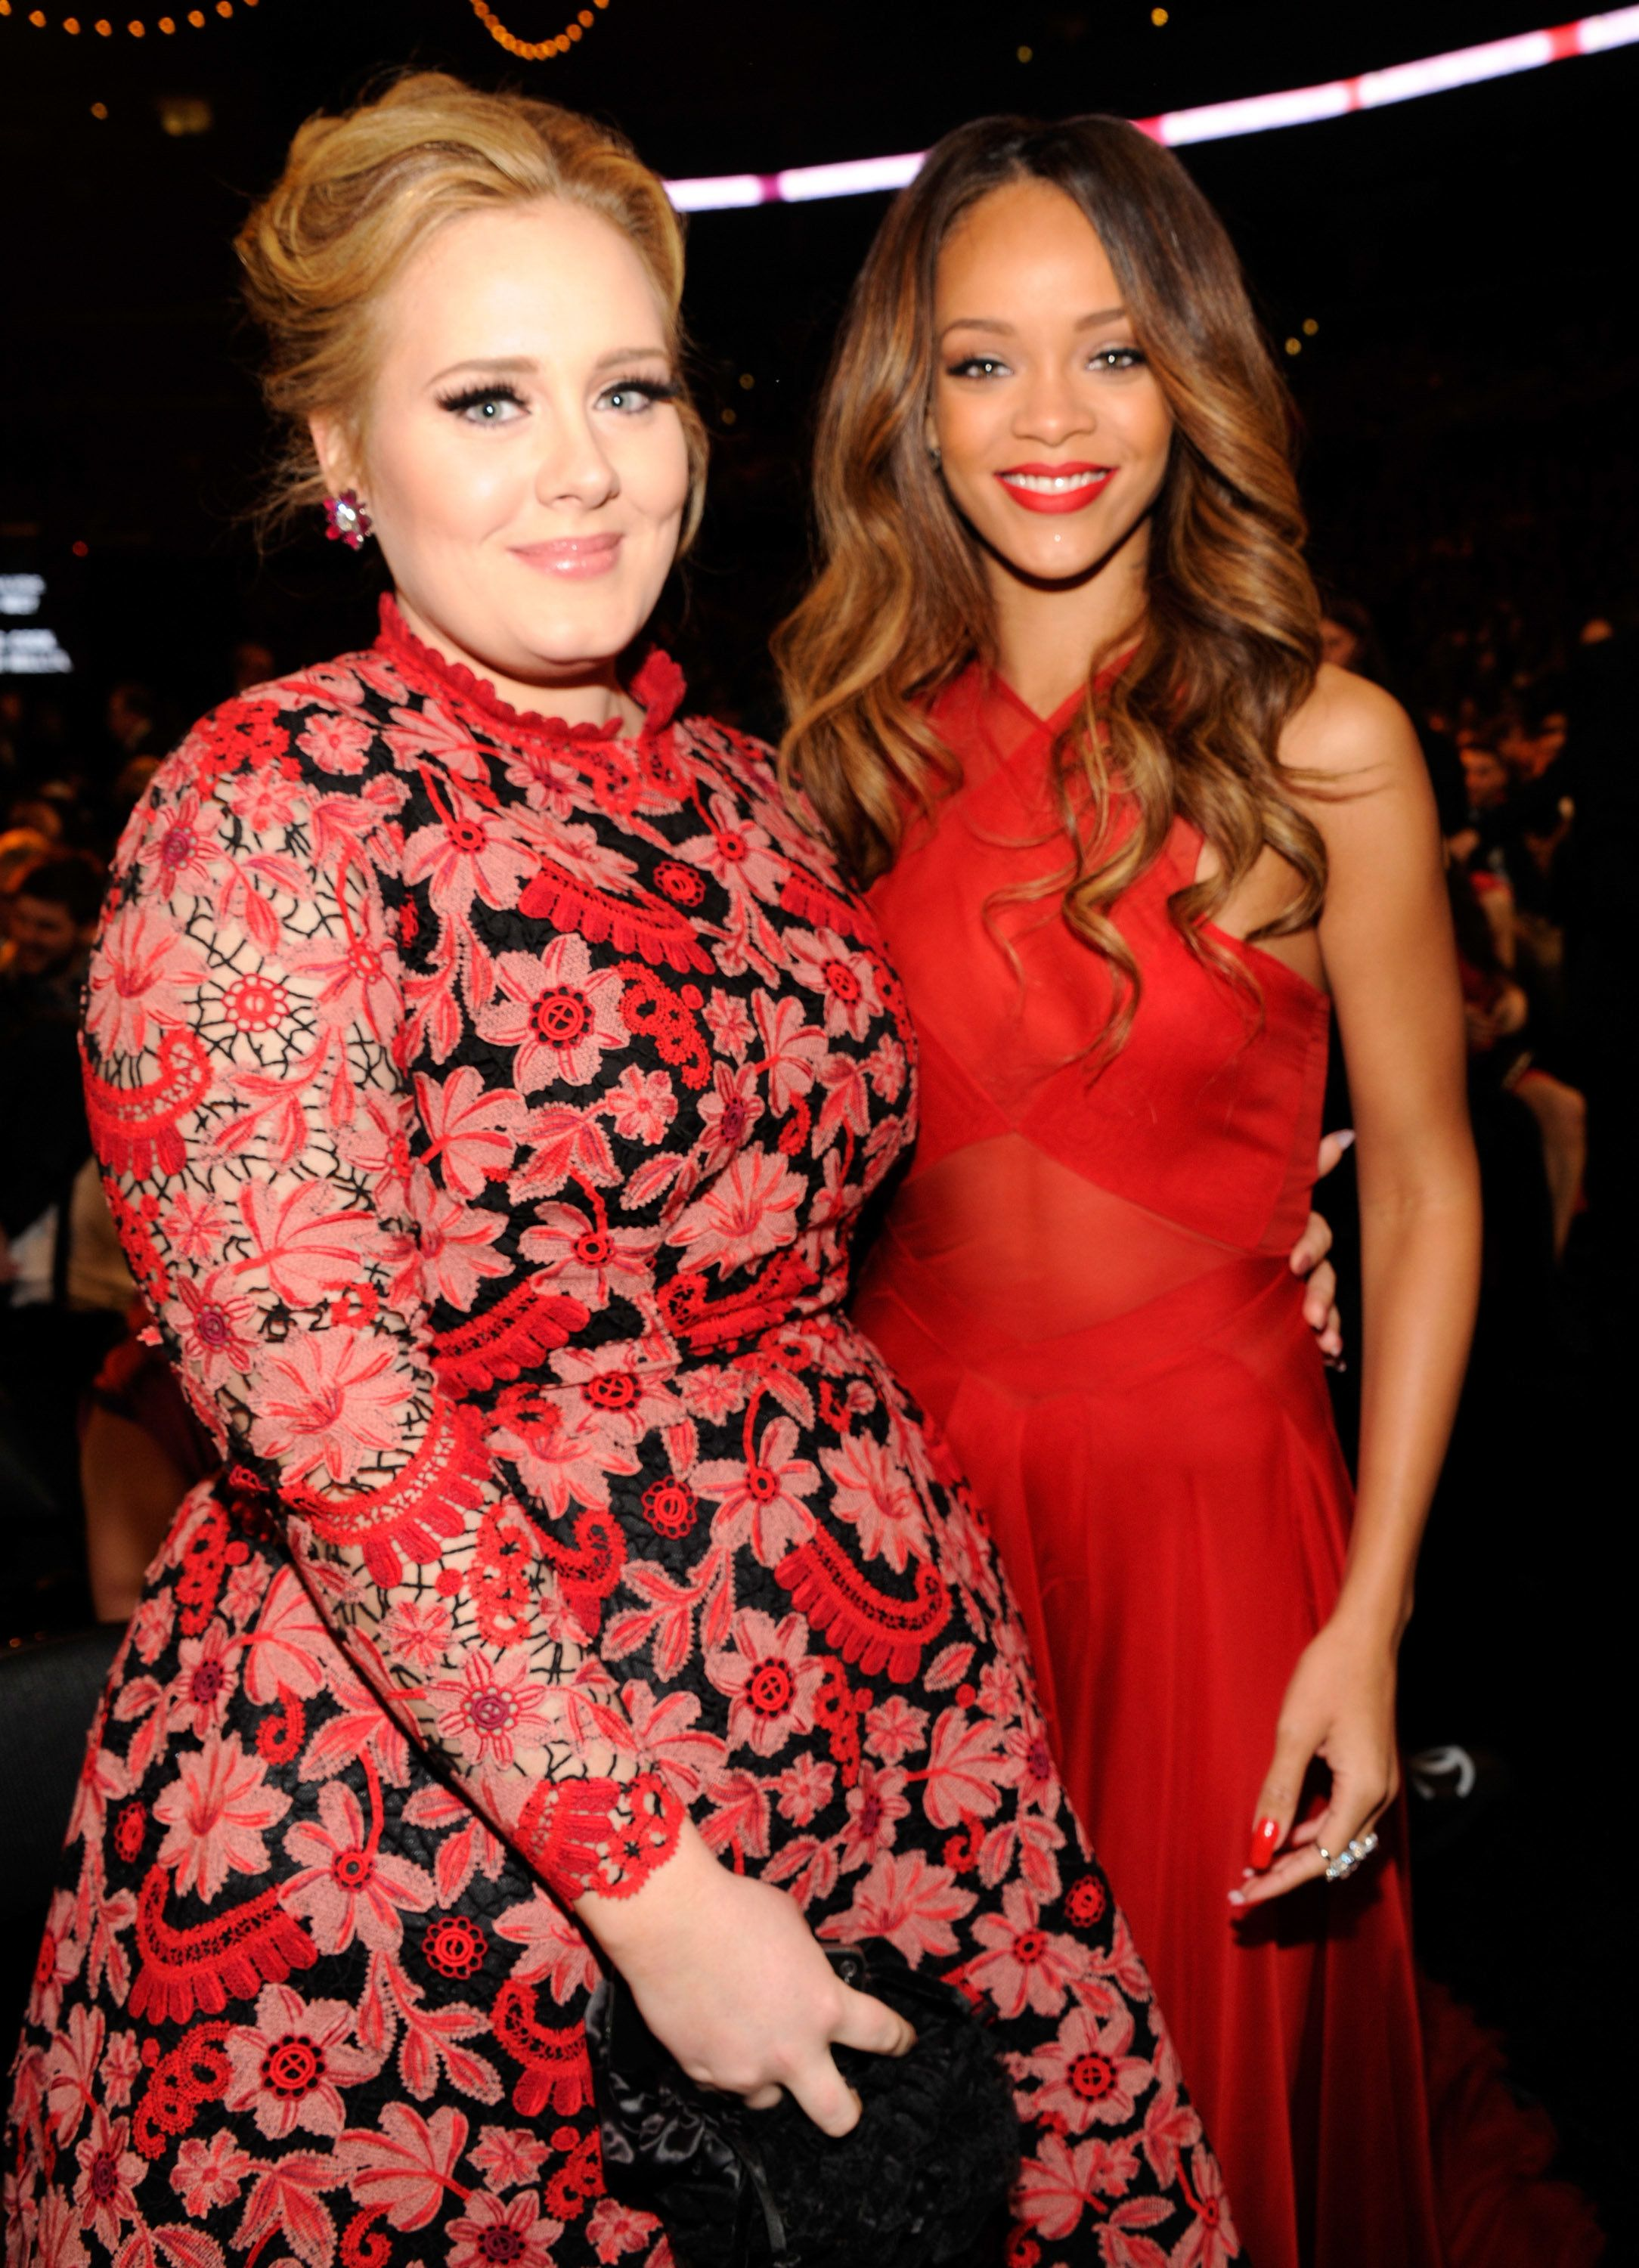 Adele and Rihanna attend the annual Grammy Awards in Los Angeles in